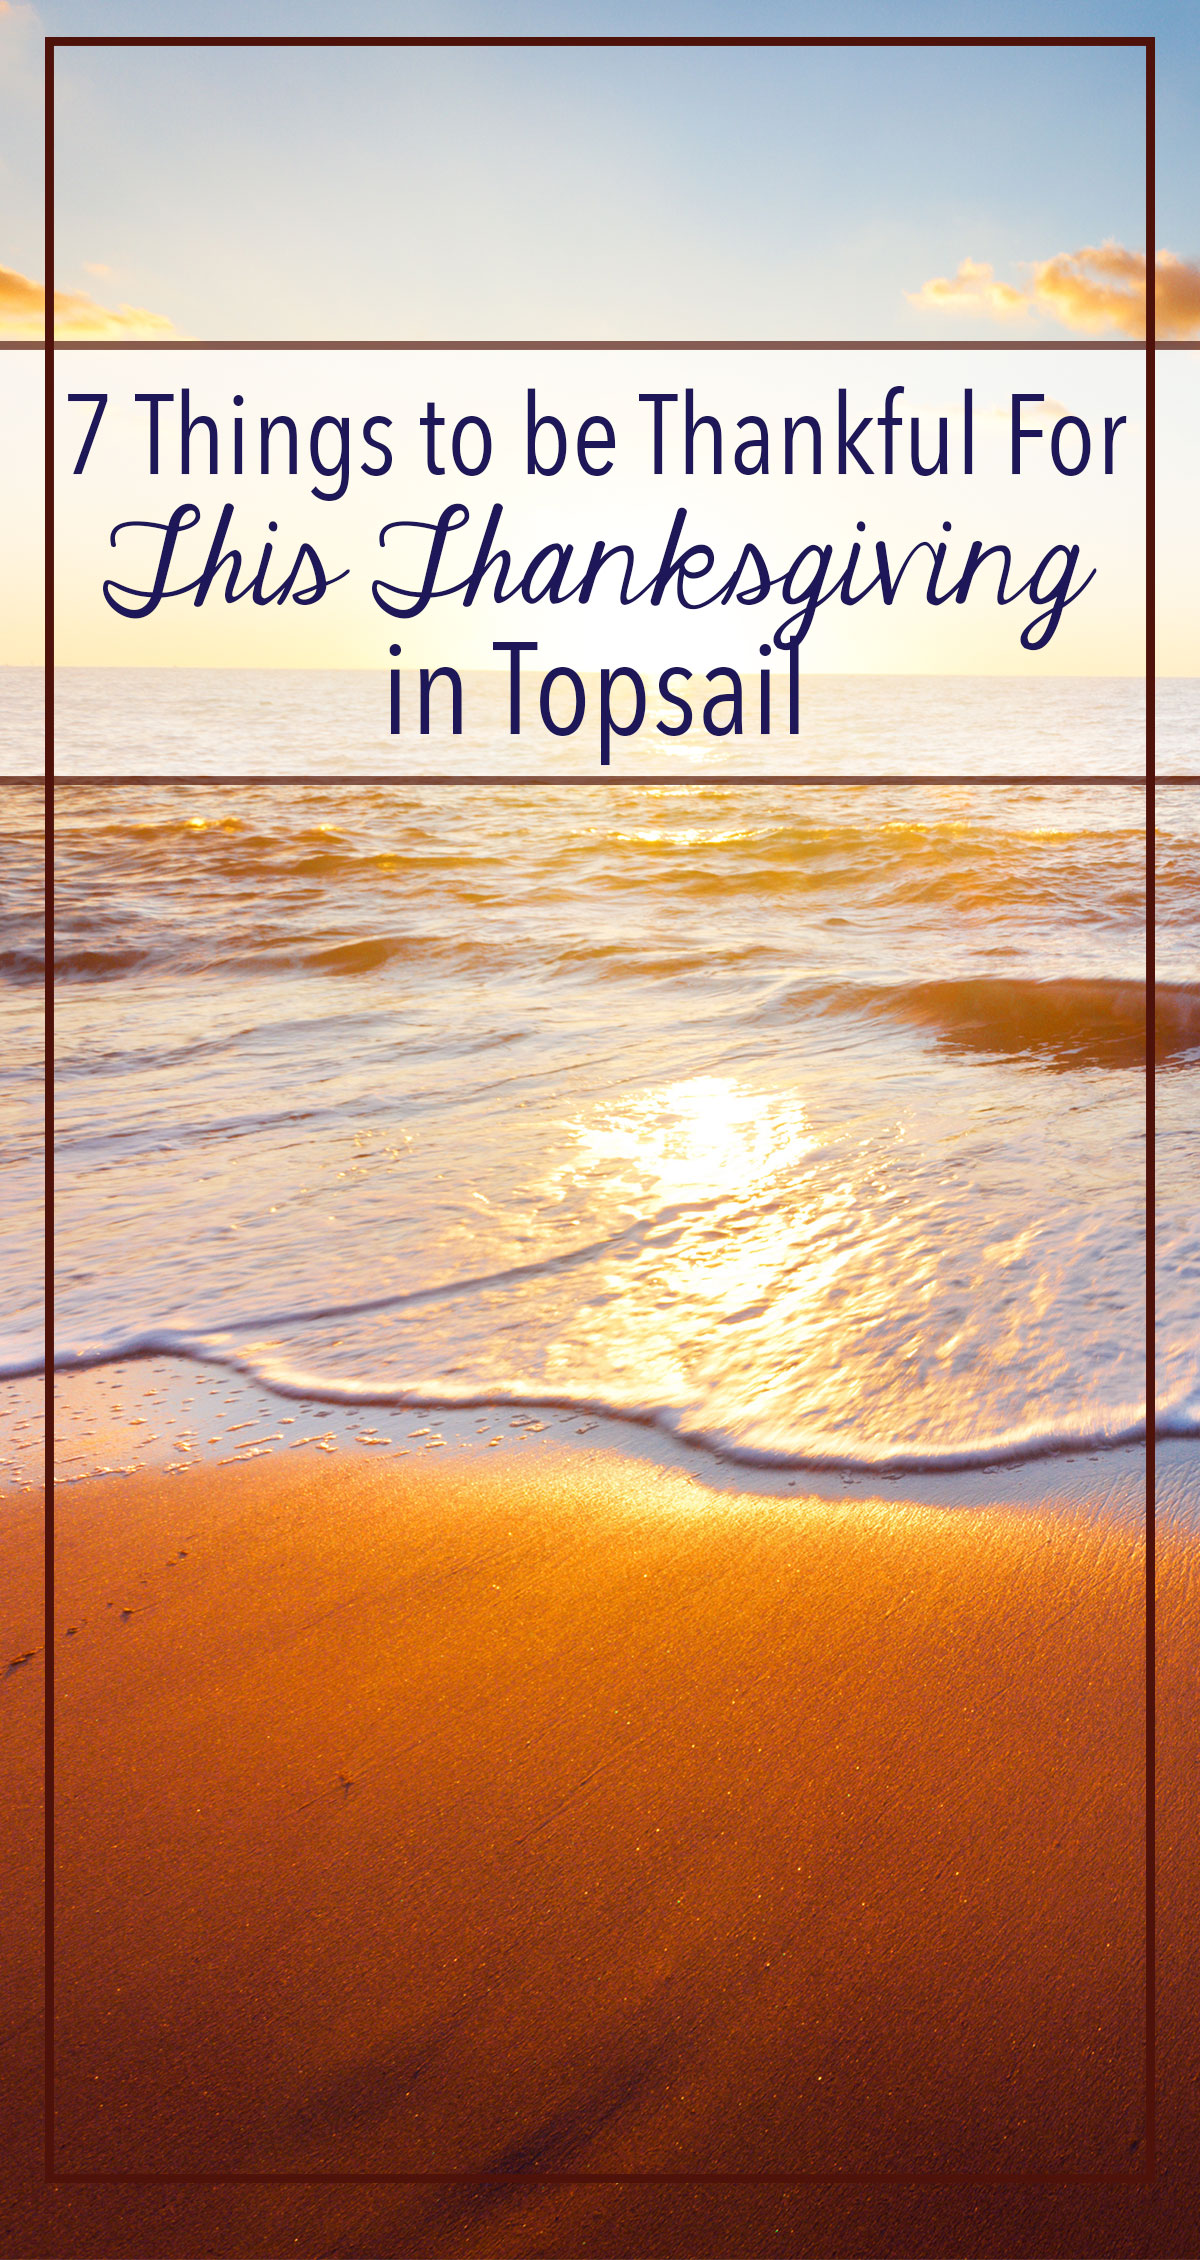 7 Things to be Thankful for This Thanksgiving in Topsail Pin